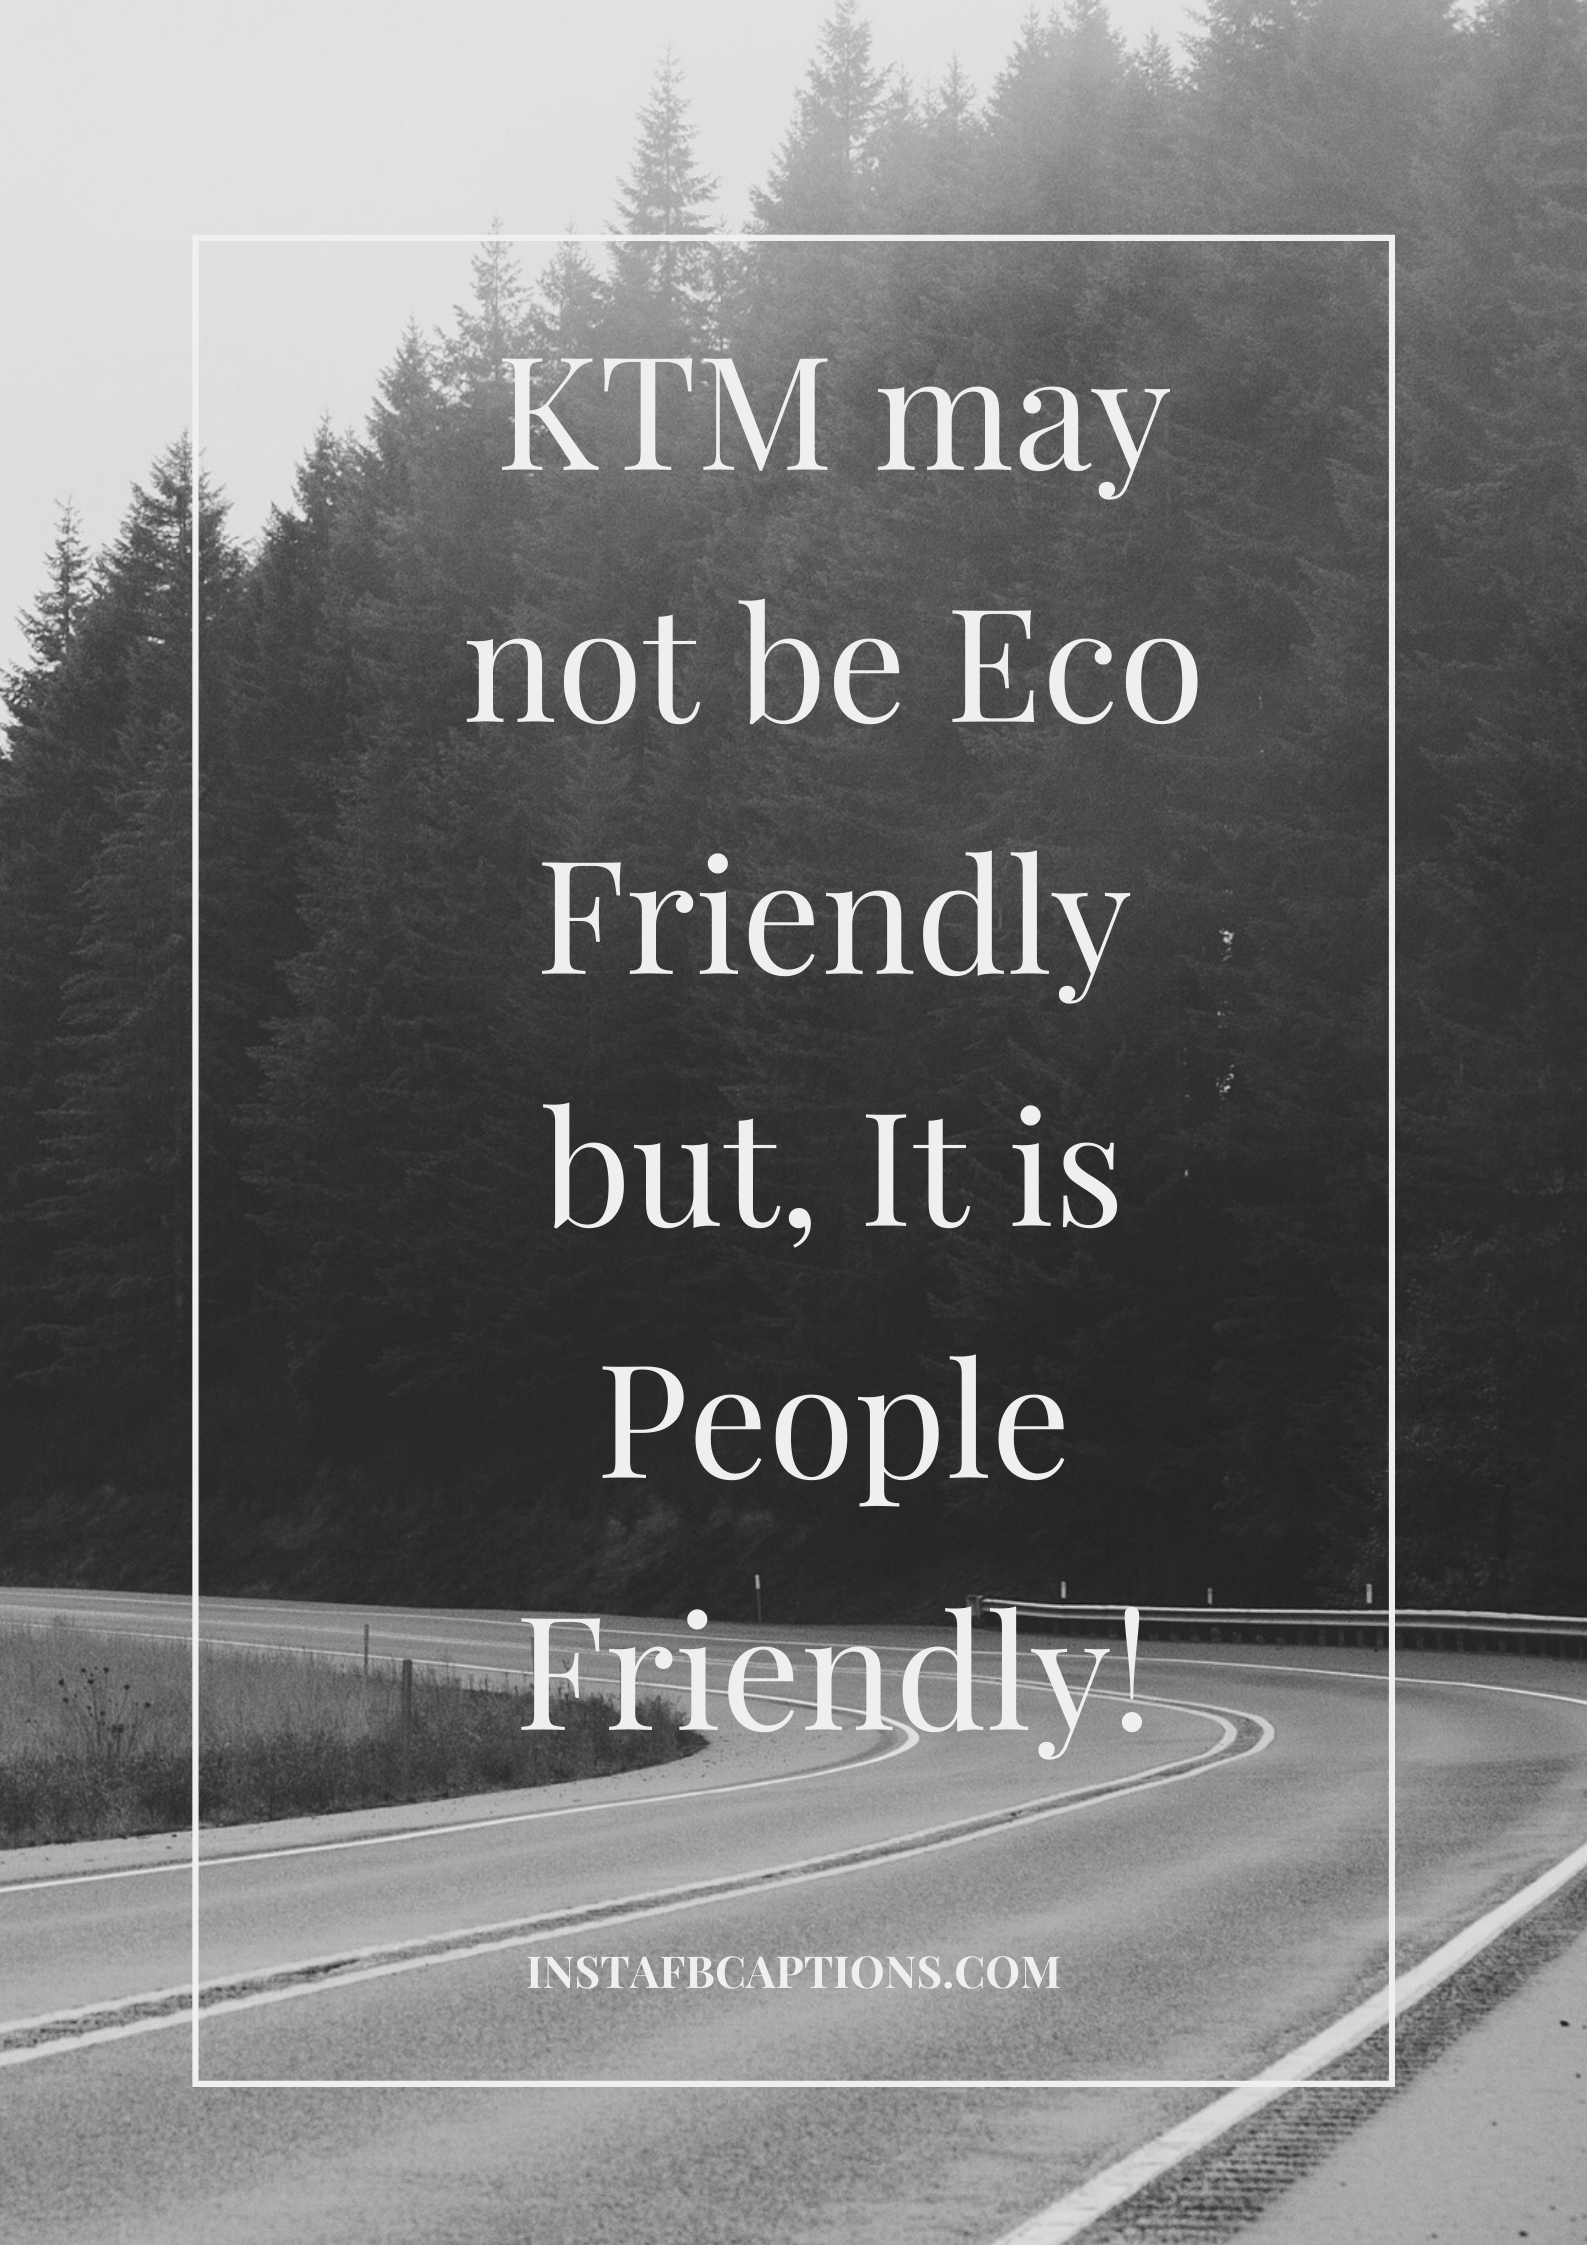 Killer Quotes To Fall In Love With Ktmduke Bikes  - Killer Quotes to Fall in Love with KTMDuke Bikes - BIKES Instagram Captions for New Bike Riders in 2021